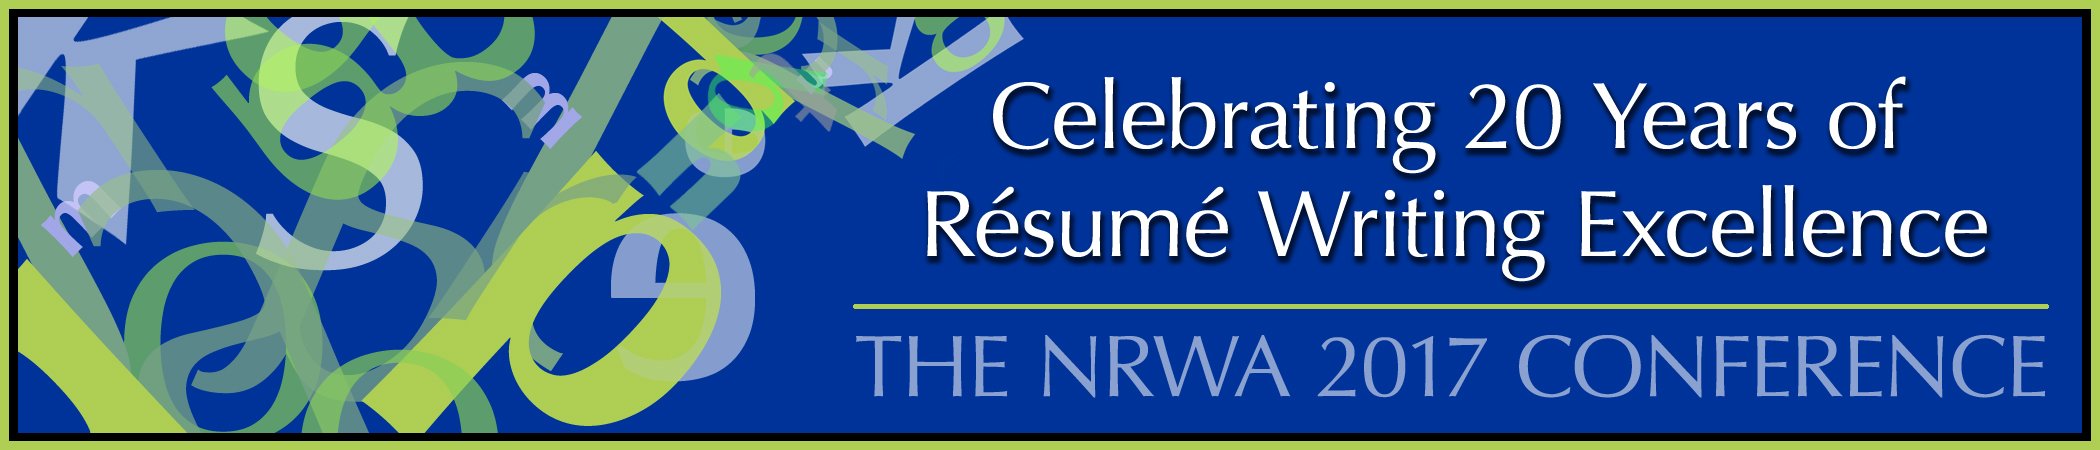 The National Resume Writers Association 2017 Conference